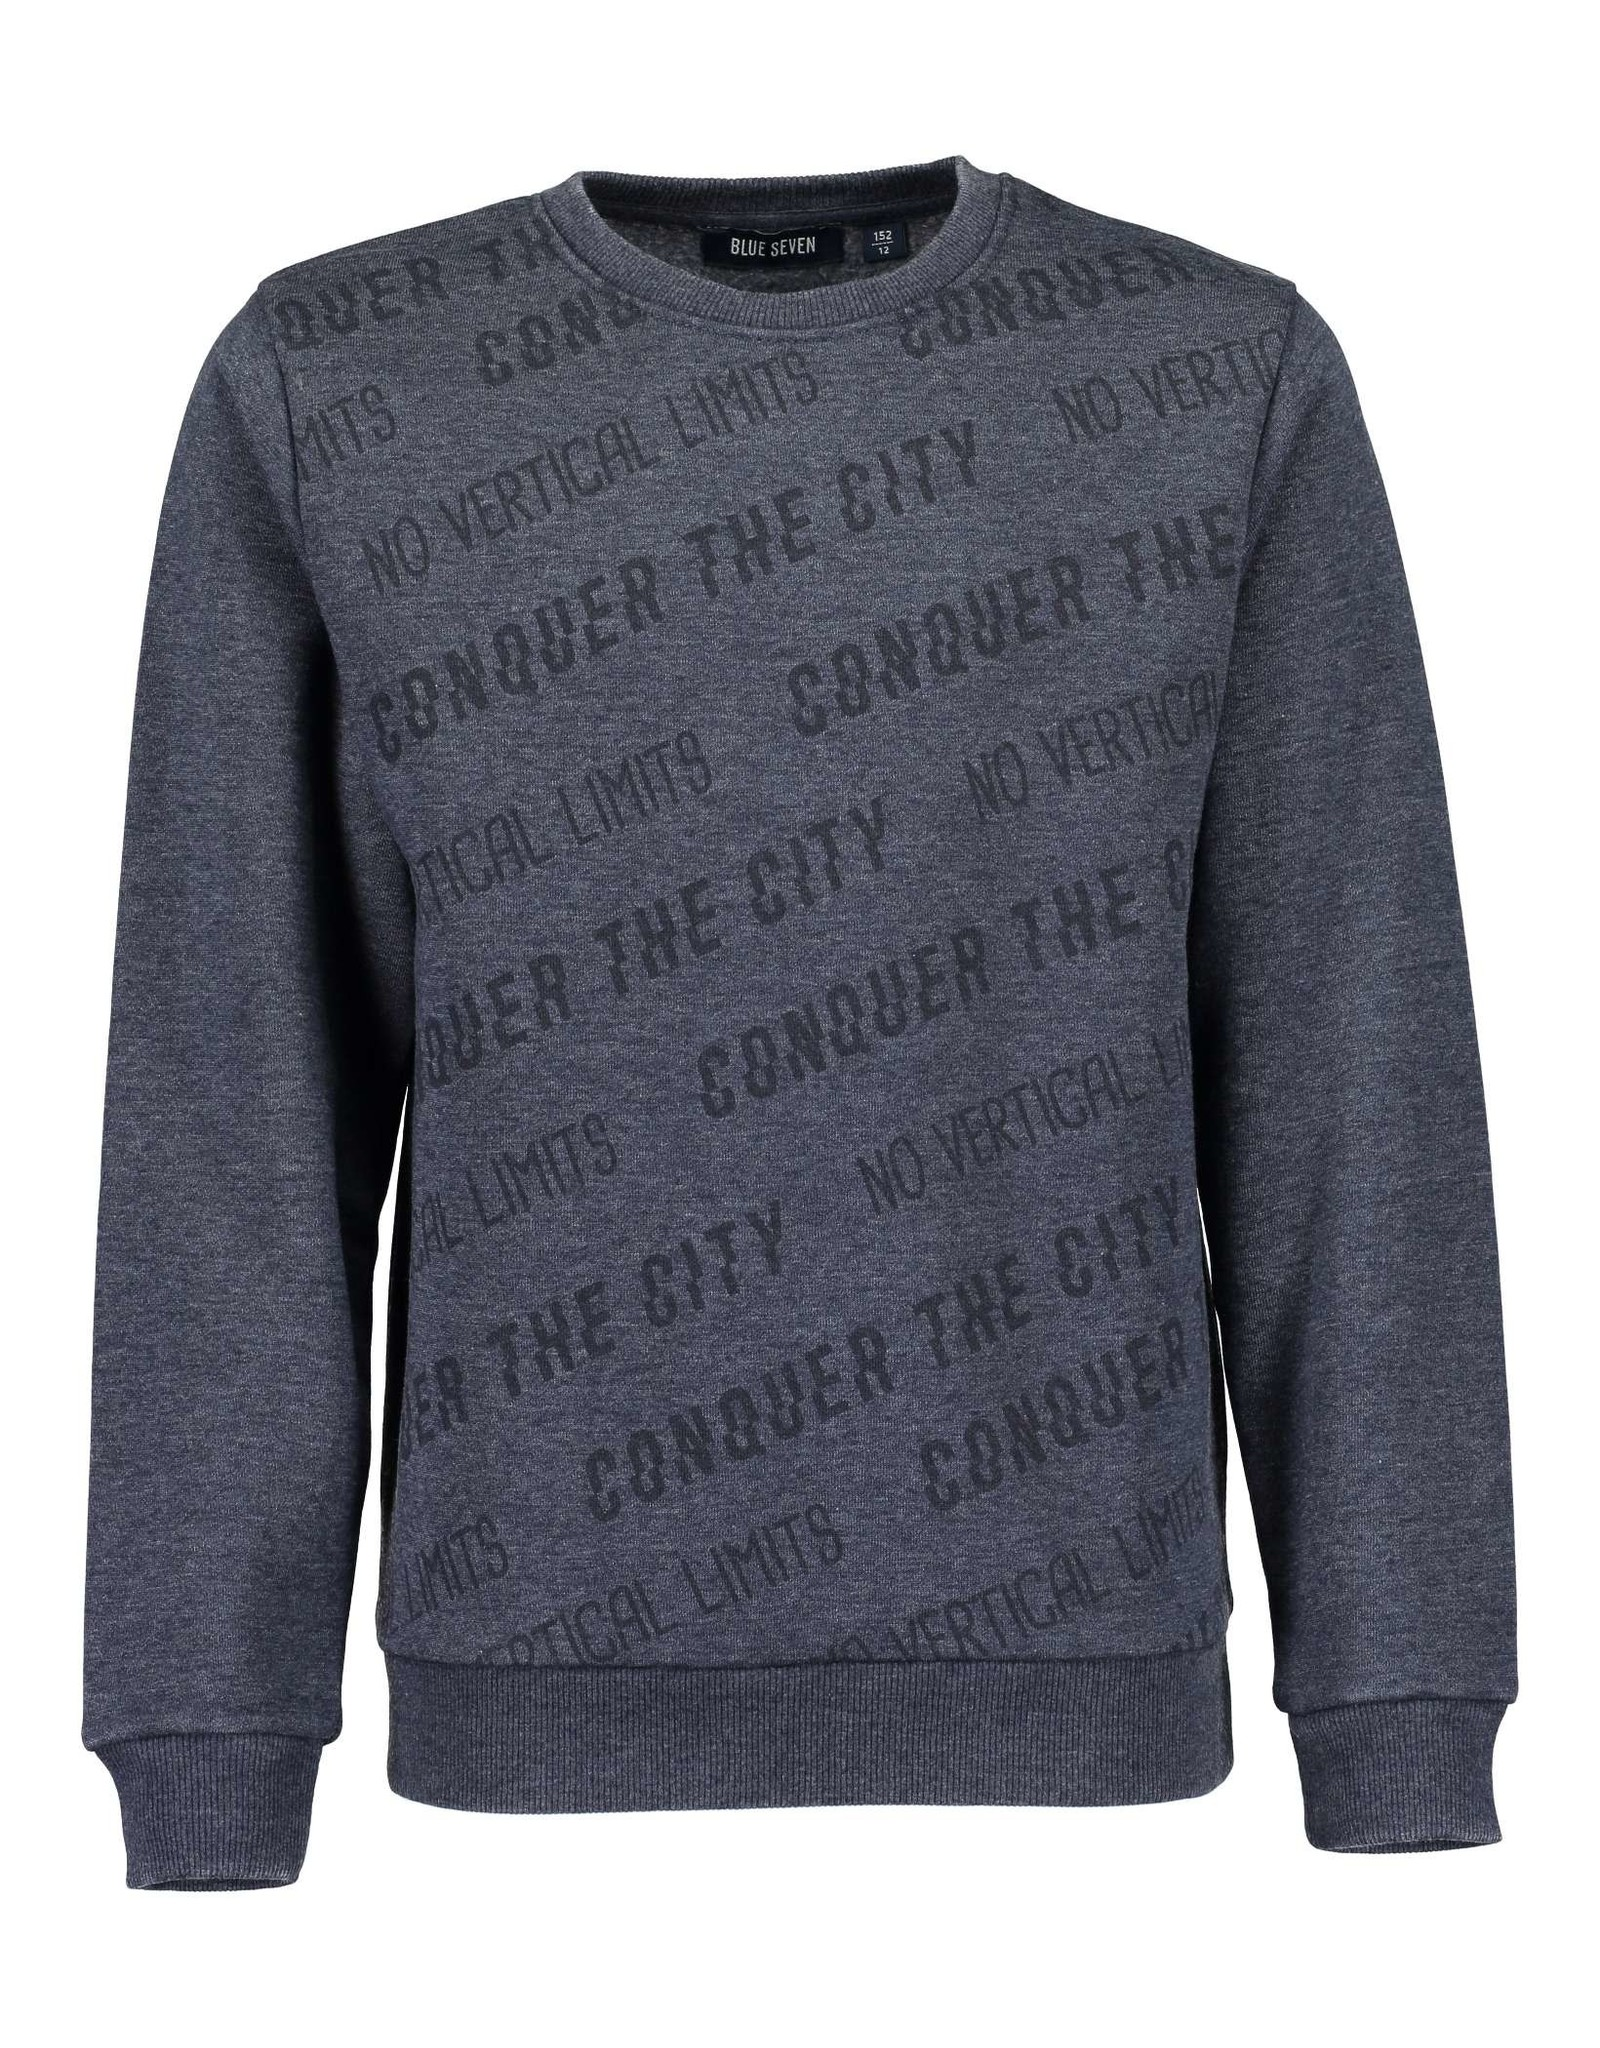 Blue Seven Blue Seven jongens sweater NO LIMITS blauw